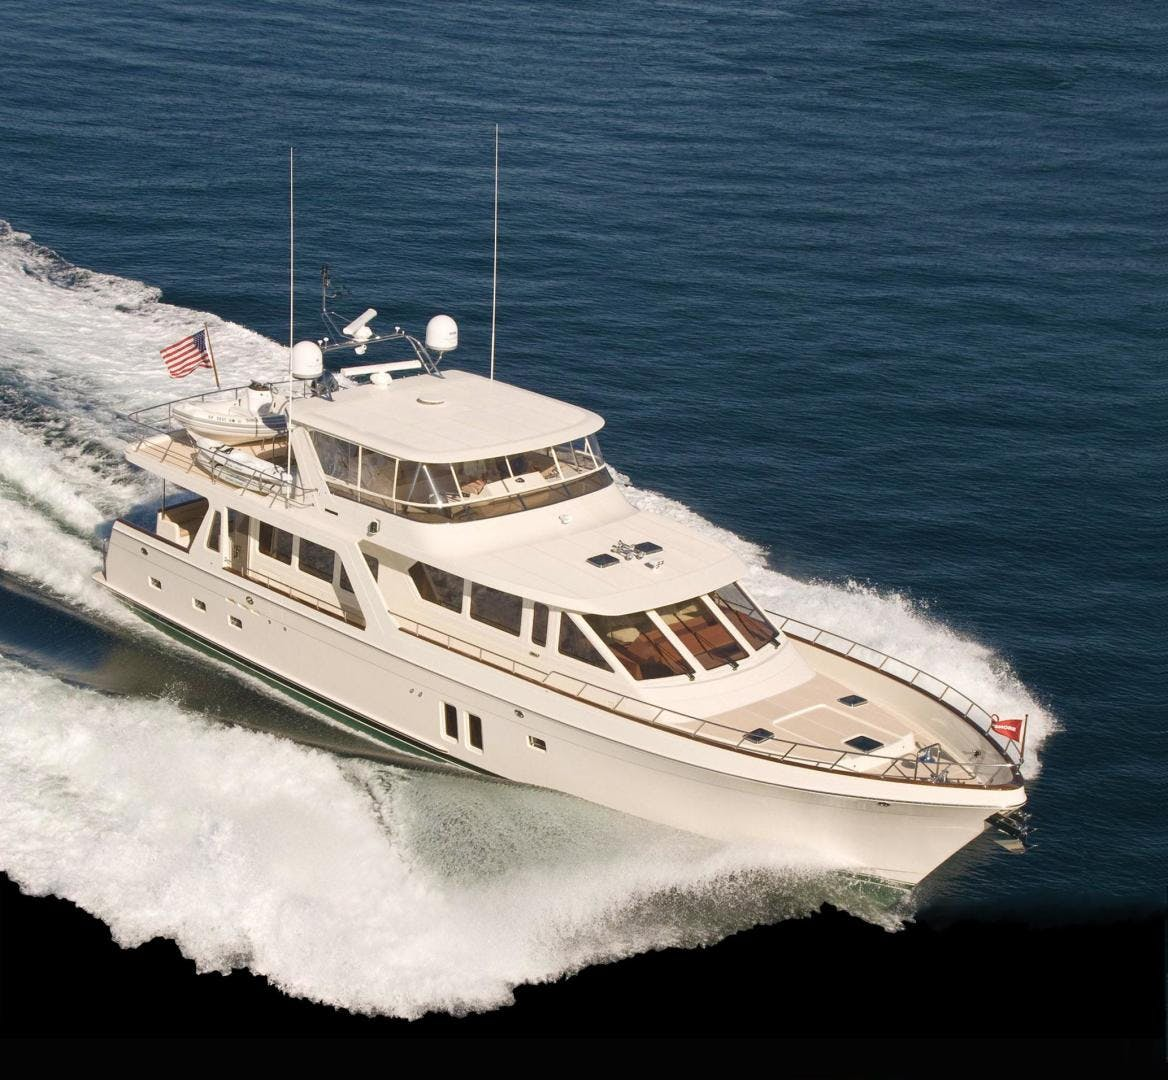 2020 Offshore Yachts 76' 76/80 Motoryacht    Picture 3 of 10